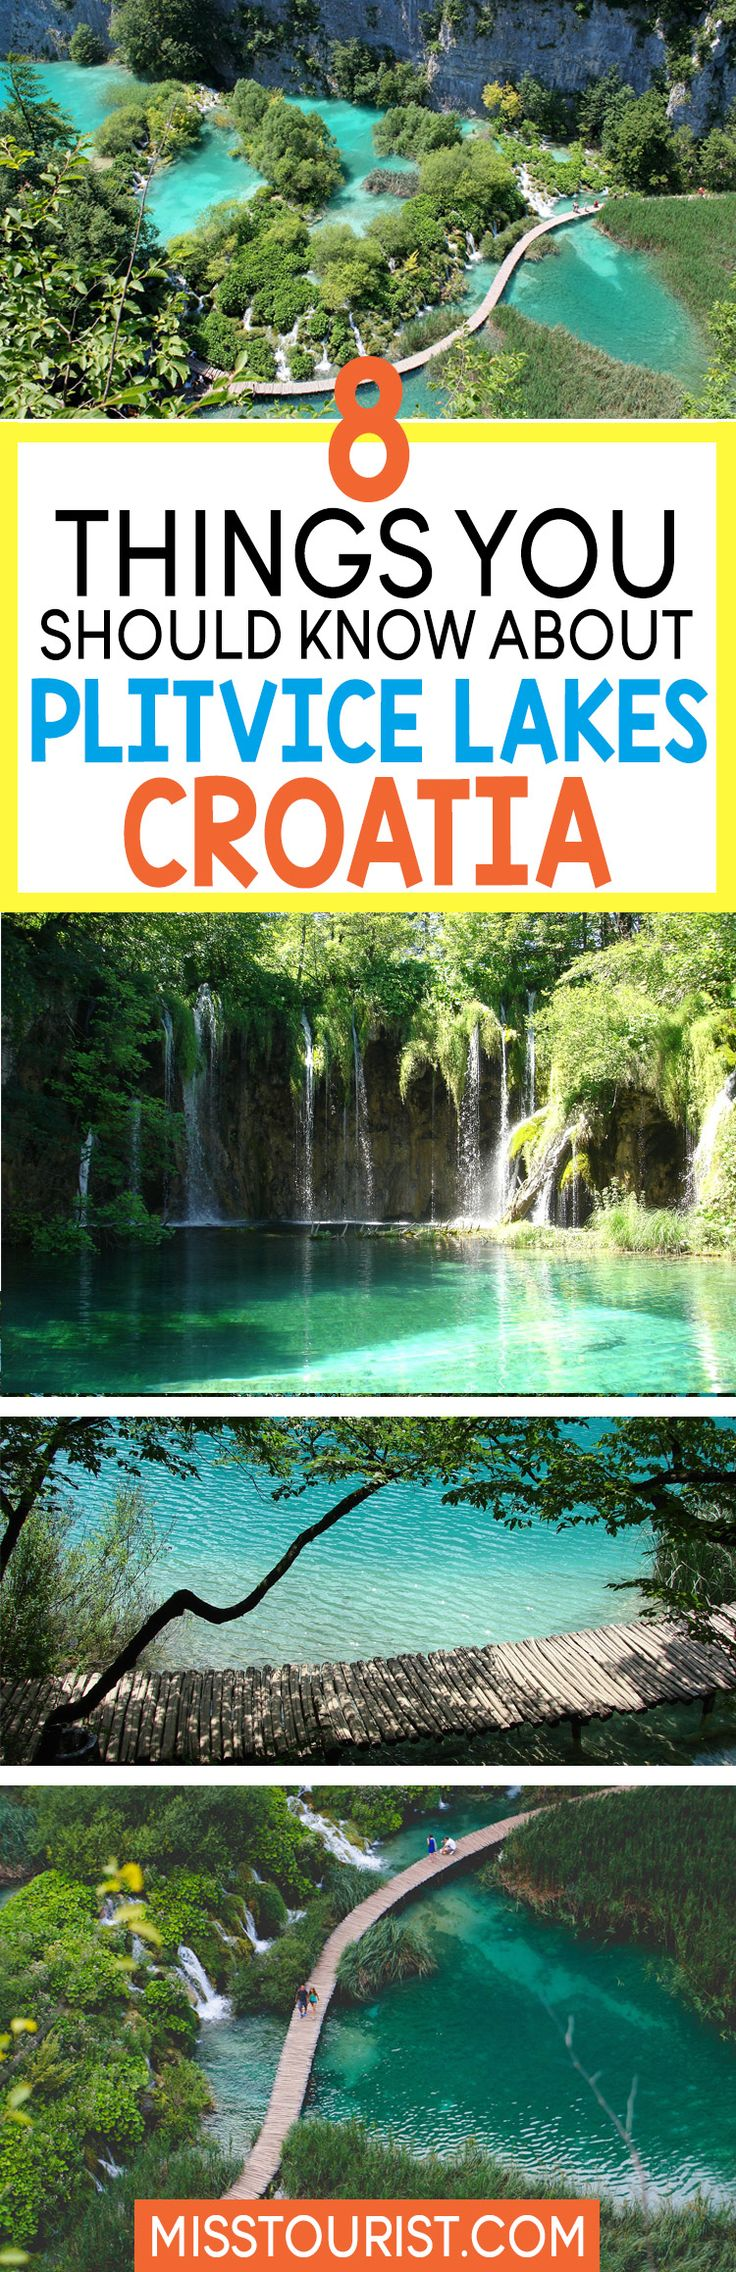 Traveling to Plitvice Lake National Park in Croatia? Click to learn travel tips on how to visit in all seasons plus find the best photography spots and swim near waterfalls! #croatia #europe ******************************************** Plitvice Lakes Croatia | Plitvice Lakes National Park | Europe travel | Europe destinations | Croatia travel | Croatia destinations | Things to do in Croatia